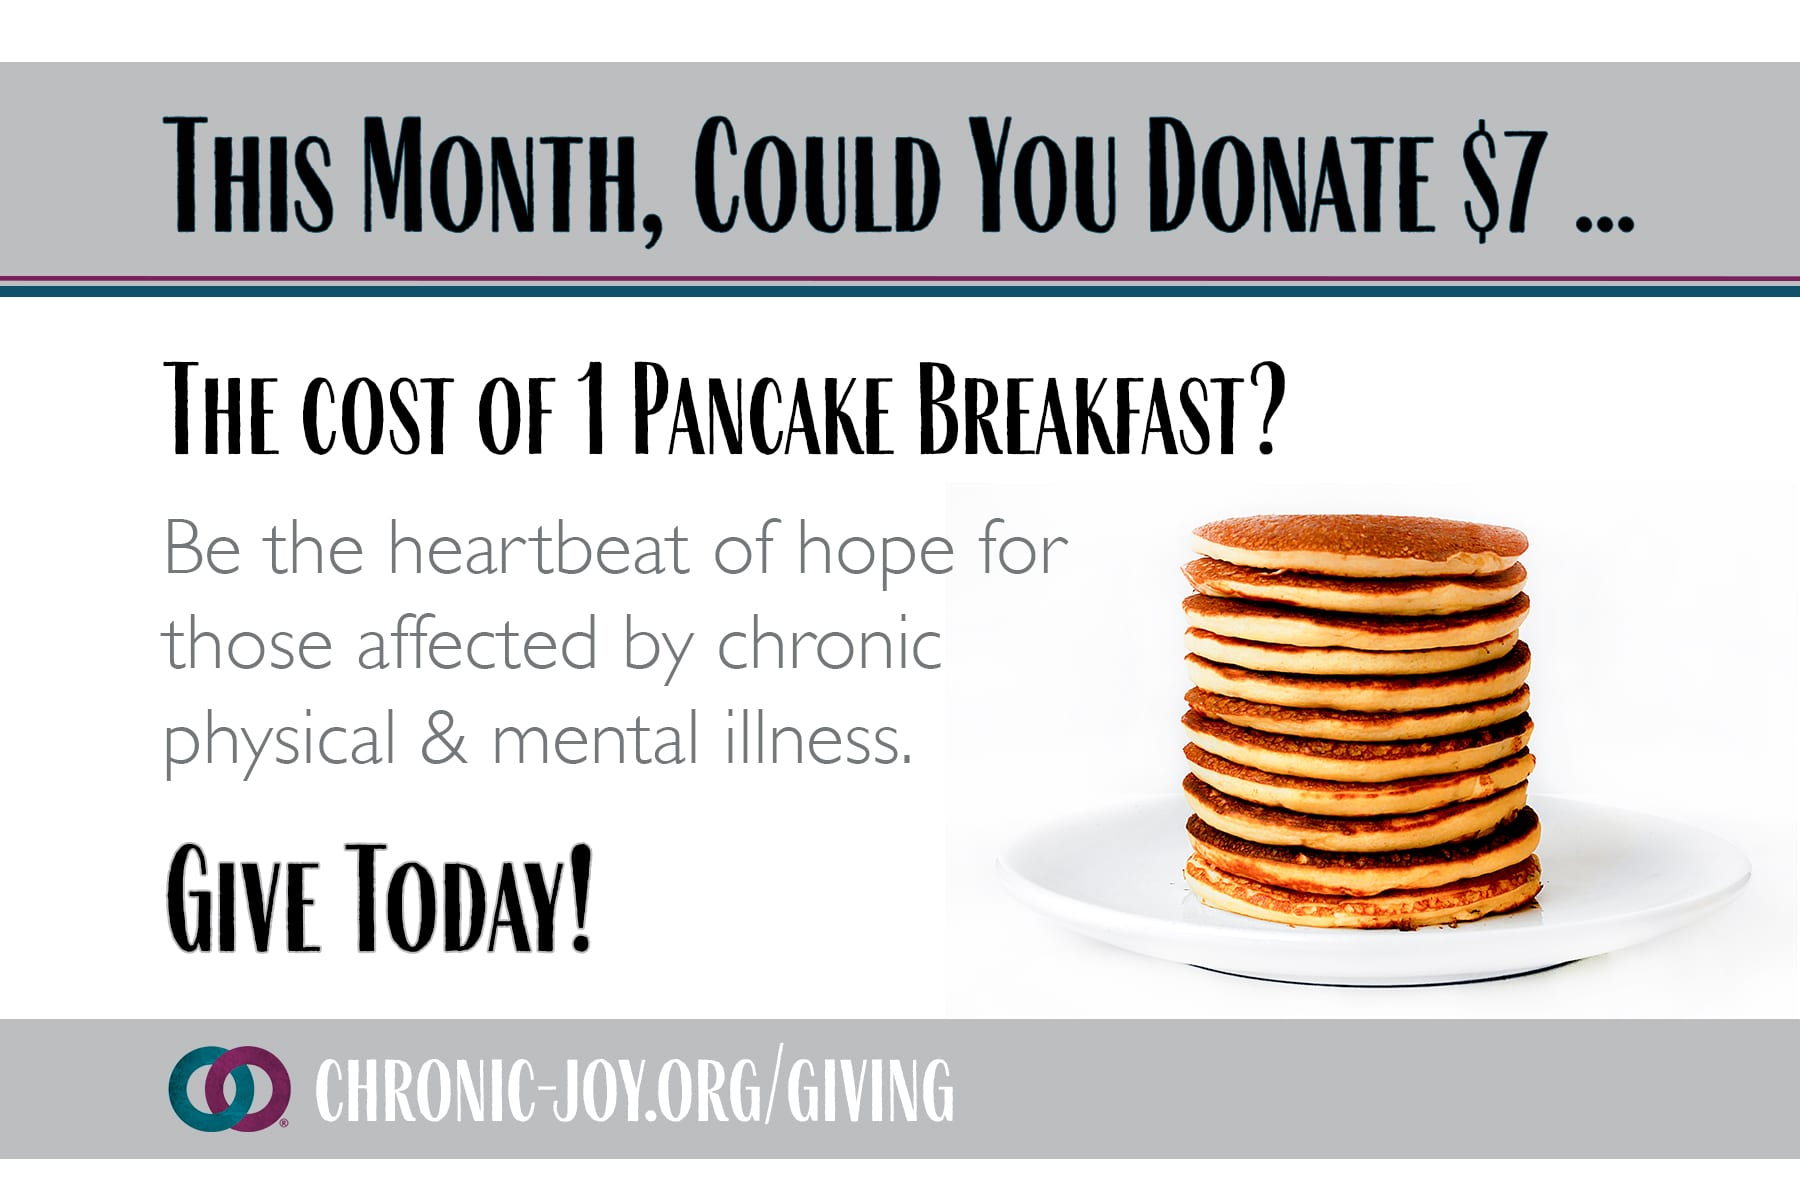 This month, could you donate $6 ... The Cost of 1 Pint of Blueberries?